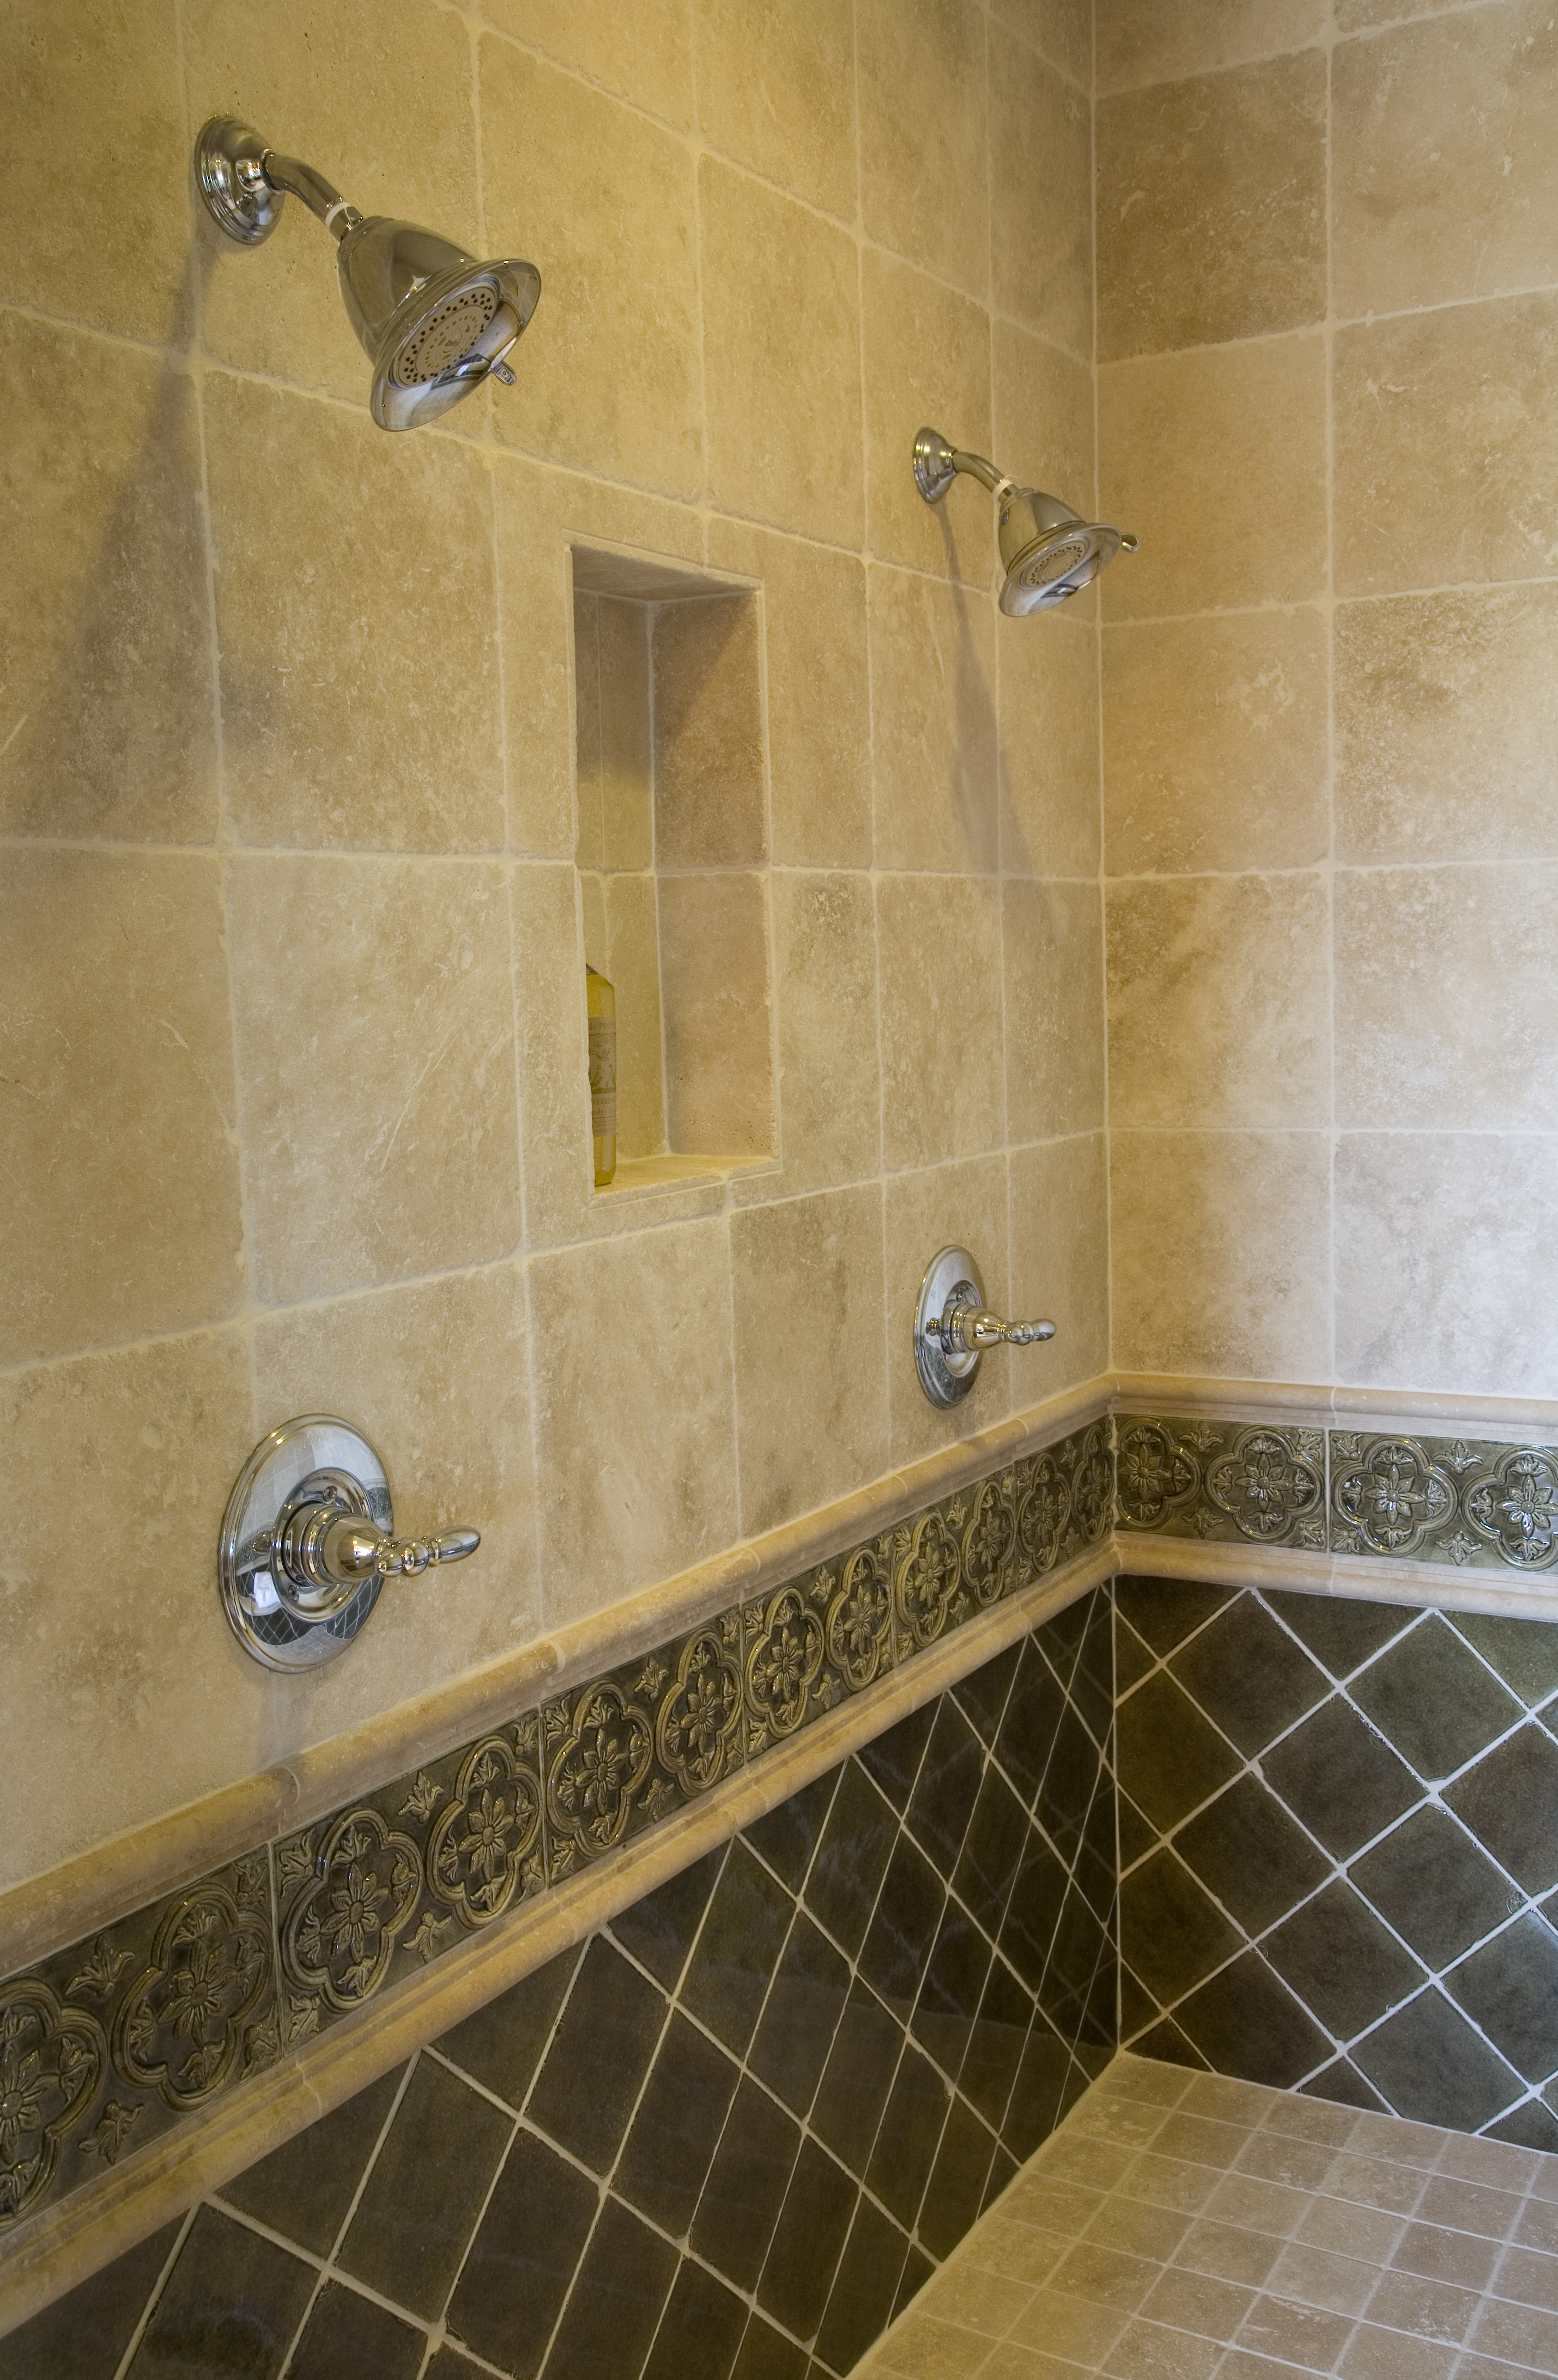 Delighted Calming Bathroom Paint Colors Small Tile Backsplash In Bathroom Pictures Shaped Master Bath Remodel Plans Shabby Chic Bath Shelves Old Hampton Bay Bath Lighting Fixtures PinkHome Depot Bathroom Images Tileexpo